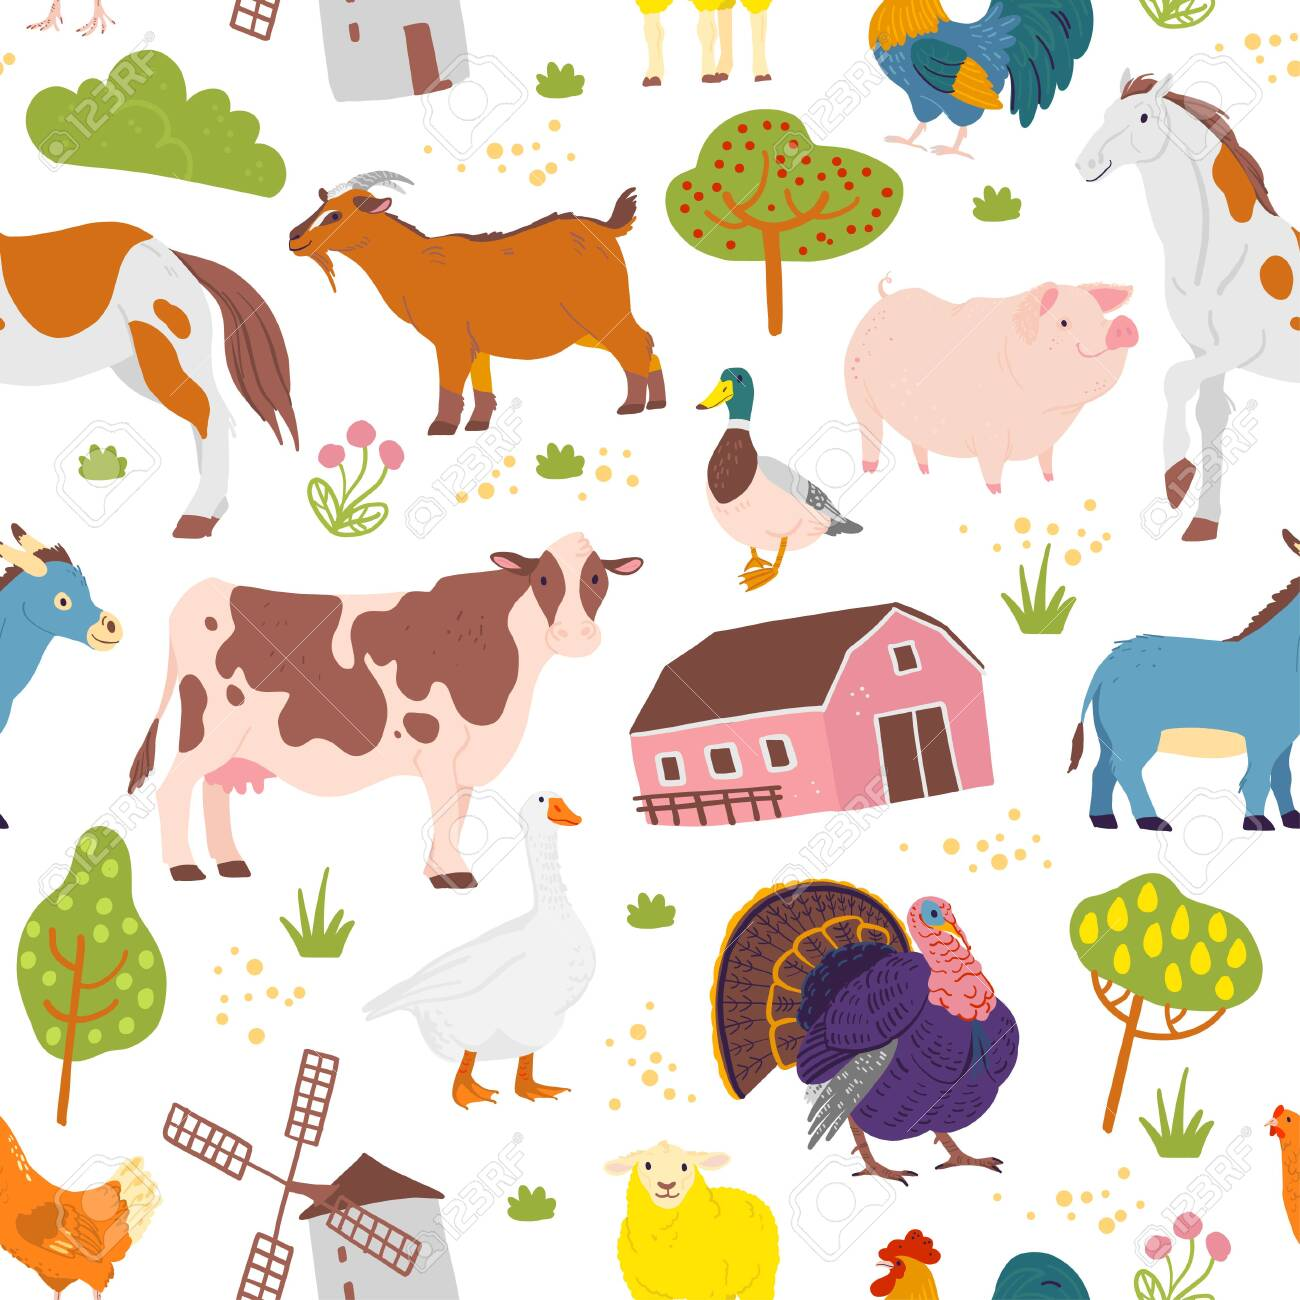 Vector flat seamless pattern with hand drawn farm domestic animals, trees, birds, house isolated on white background. Good for packaging paper, cards, wallpapers, gift tags, nursery decor etc. - 123965315